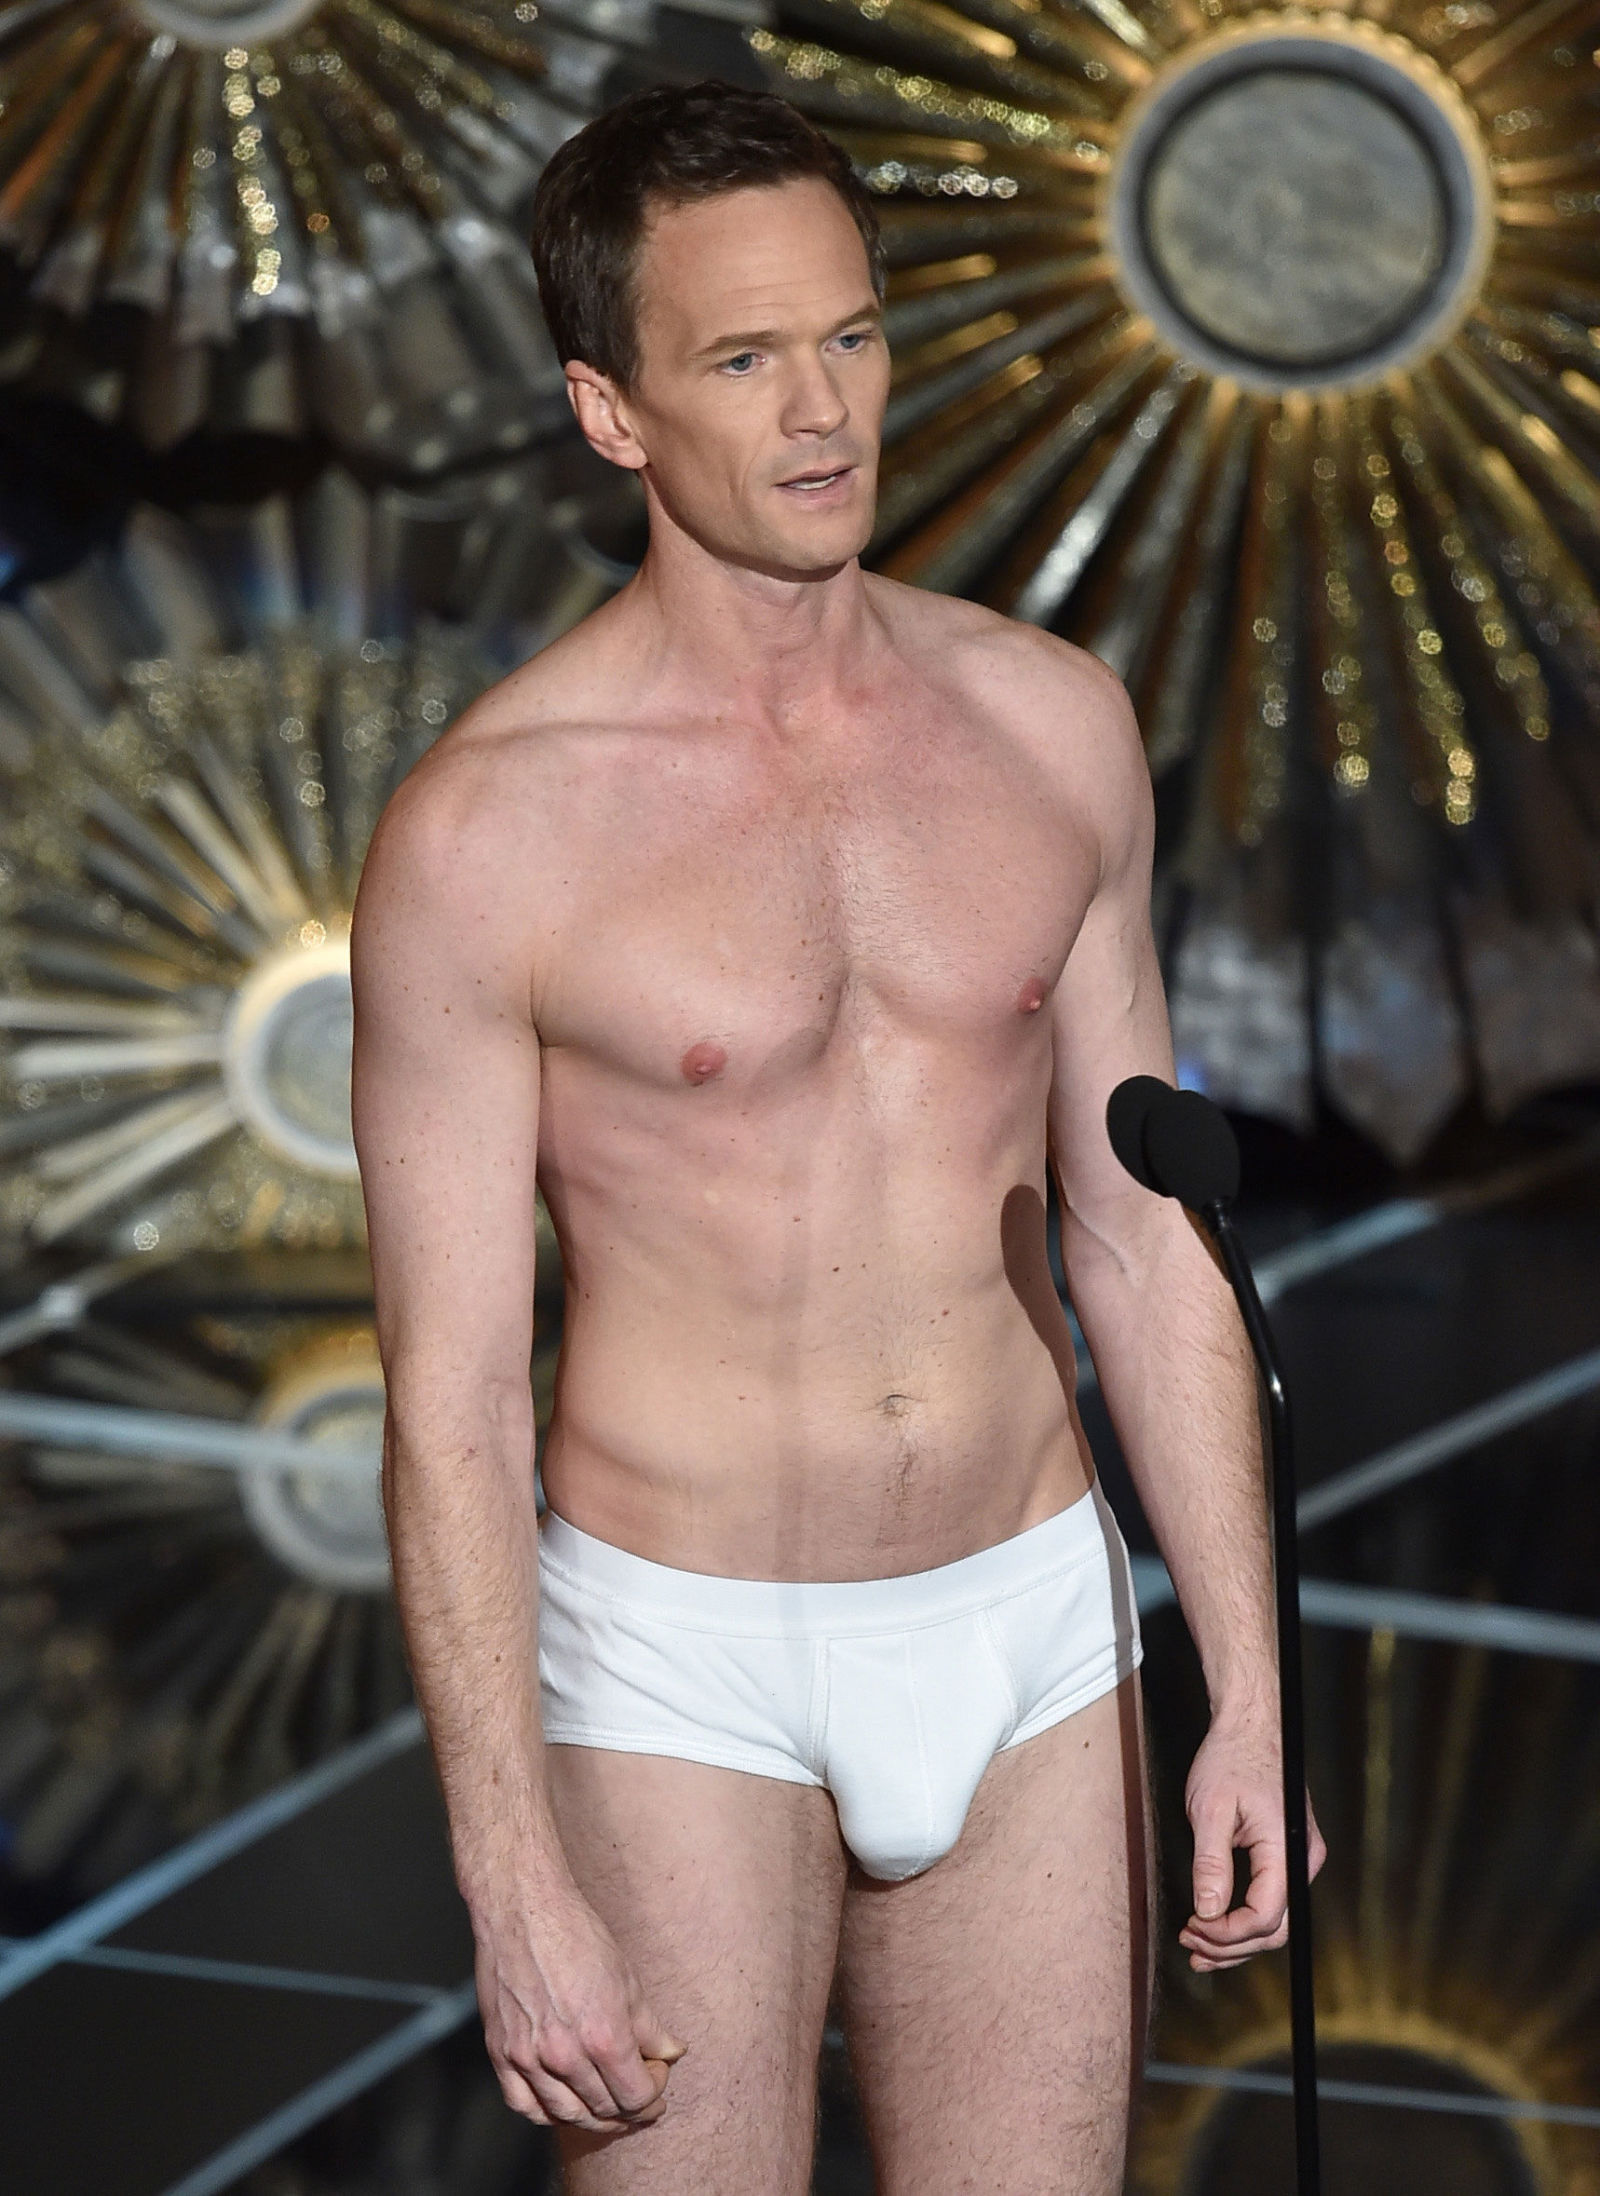 Picture5788 further 30438176 moreover Humphrey Bogart moreover Neil Patrick Harris Oscars Bulge also Watch. on oscar blooper video